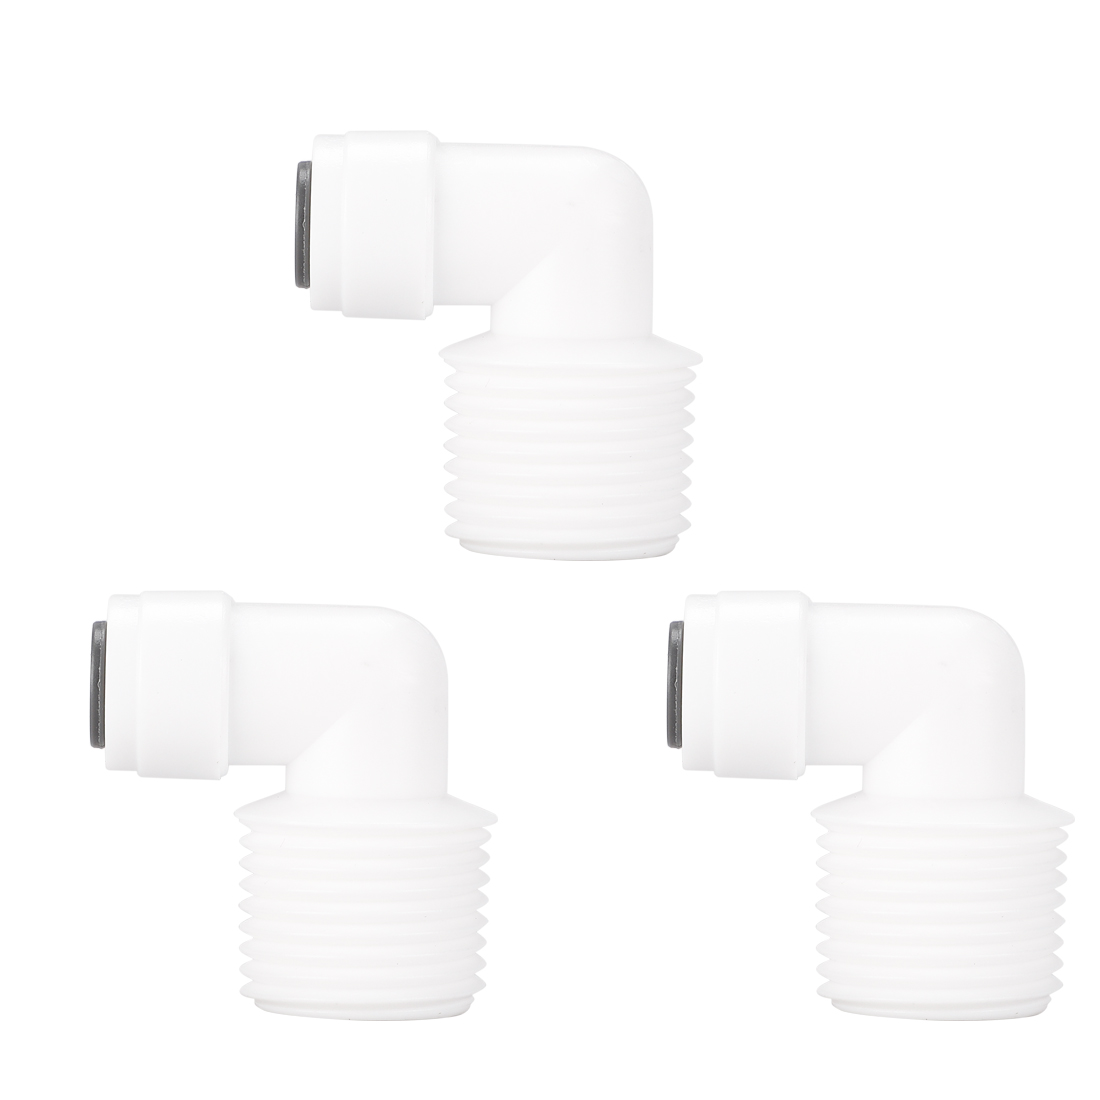 1/2 Inch BSP Male to 1/4 Inch OD Elbow Quick Connect Water Tube Fittings 3pcs